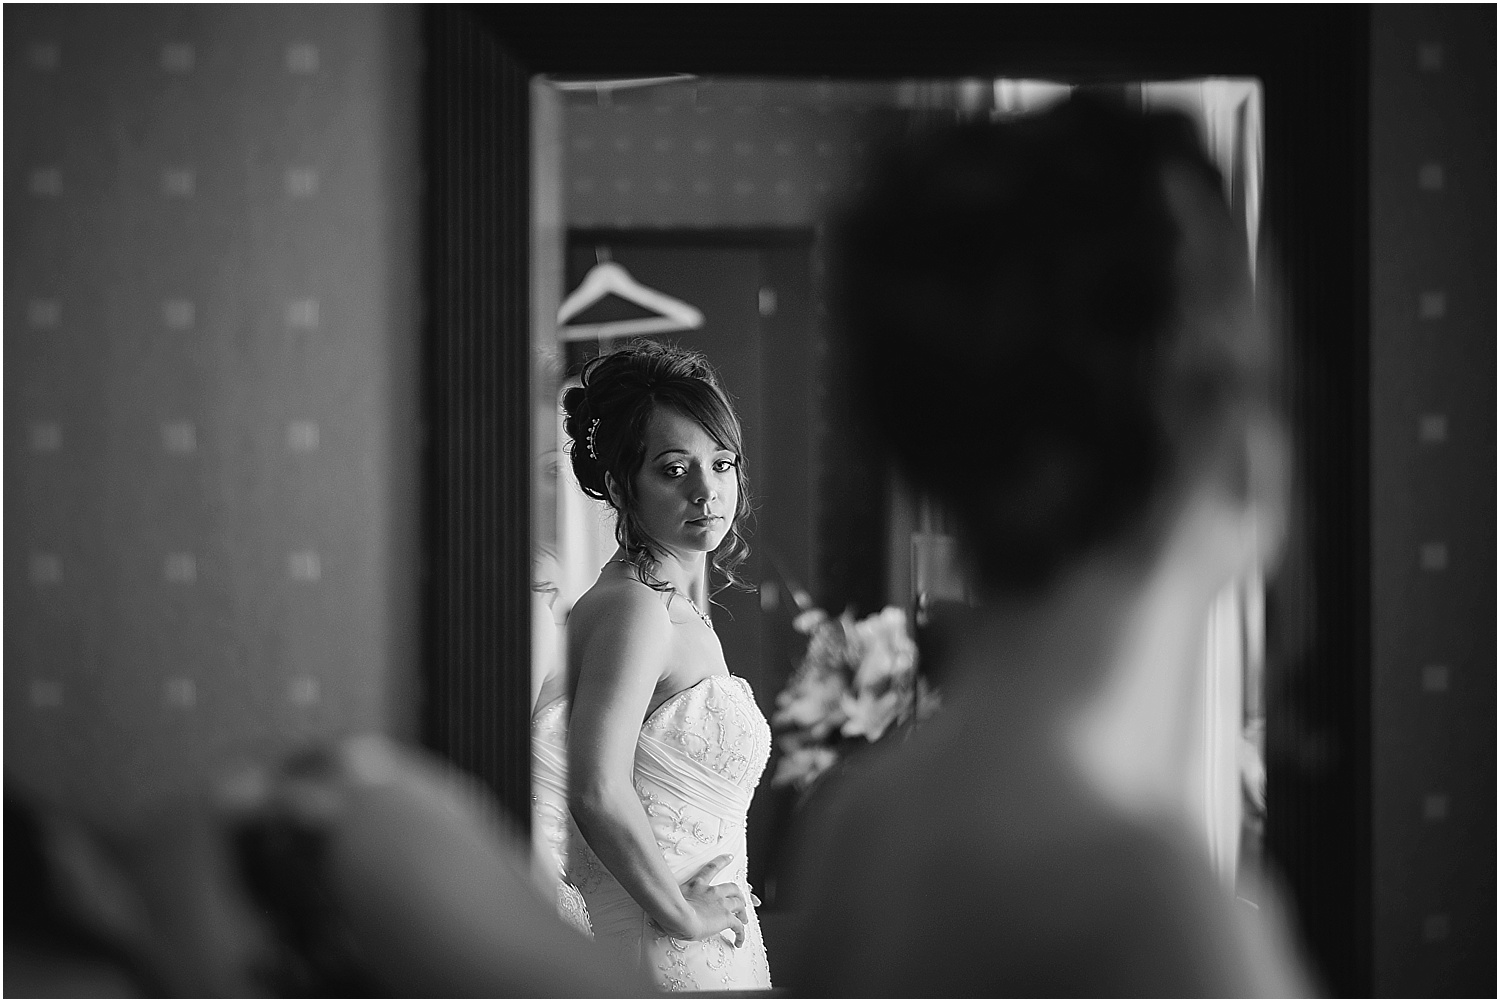 Wedding at Seaham Hall - wedding photography by www.2tonephotography.co.uk 014.jpg